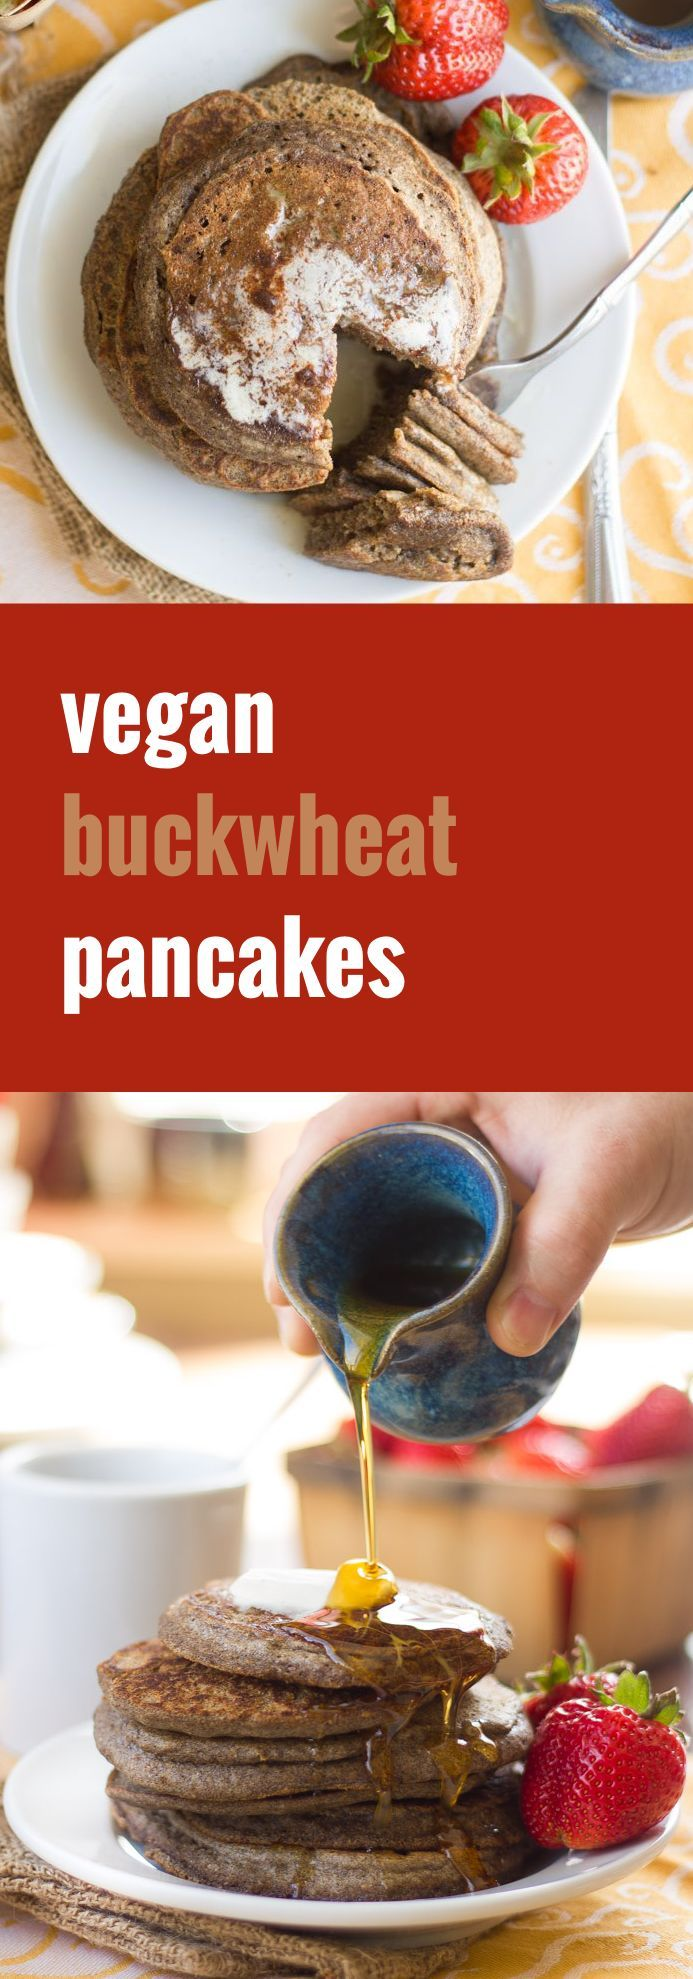 Start your morning with a stack of these fluffy vegan buckwheat pancakes, flavored up with a hint of cinnamon and drizzled in warm maple syrup!